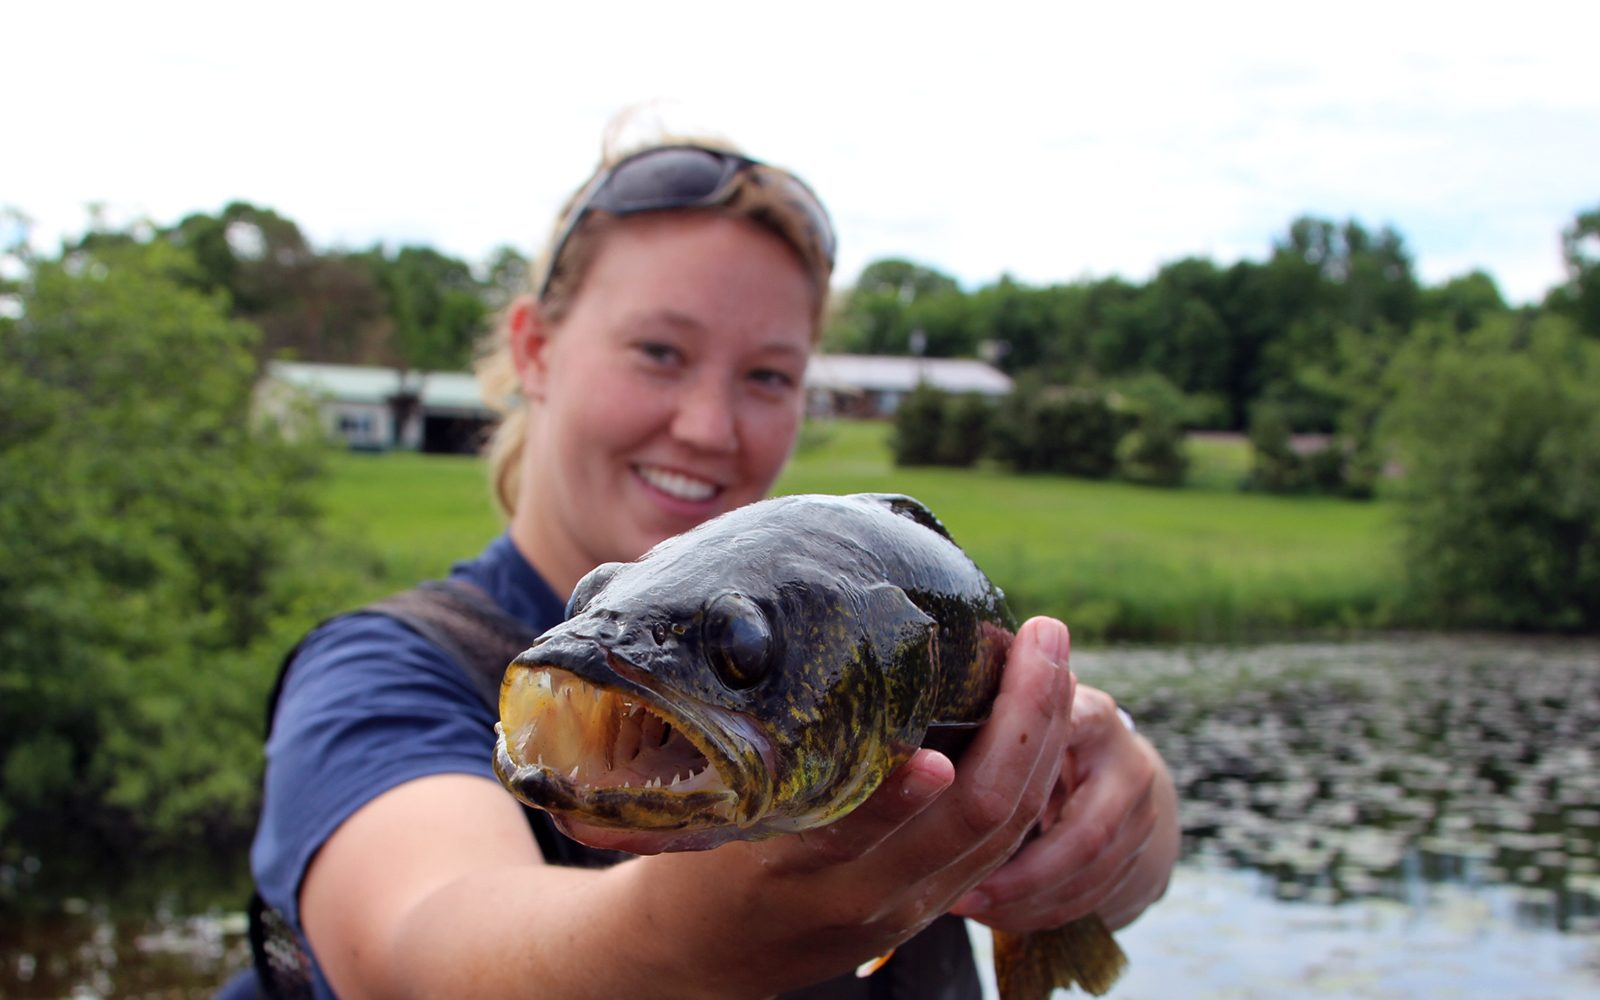 Northland College student Megan Made holds up a fish